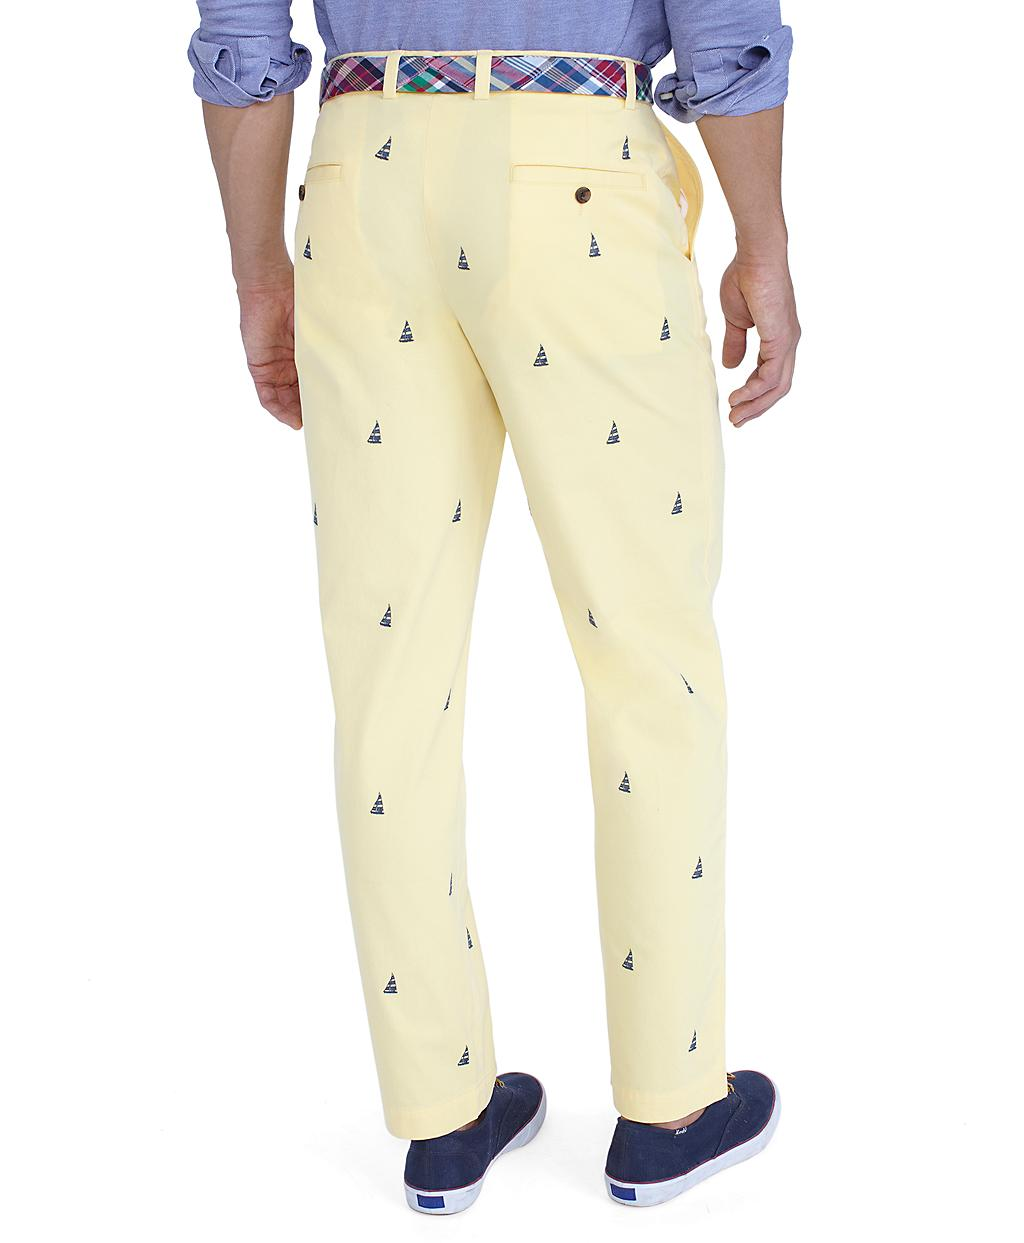 Lyst - Brooks Brothers Clark Sailboat Embroidered Pants in Yellow ... d6a94206d